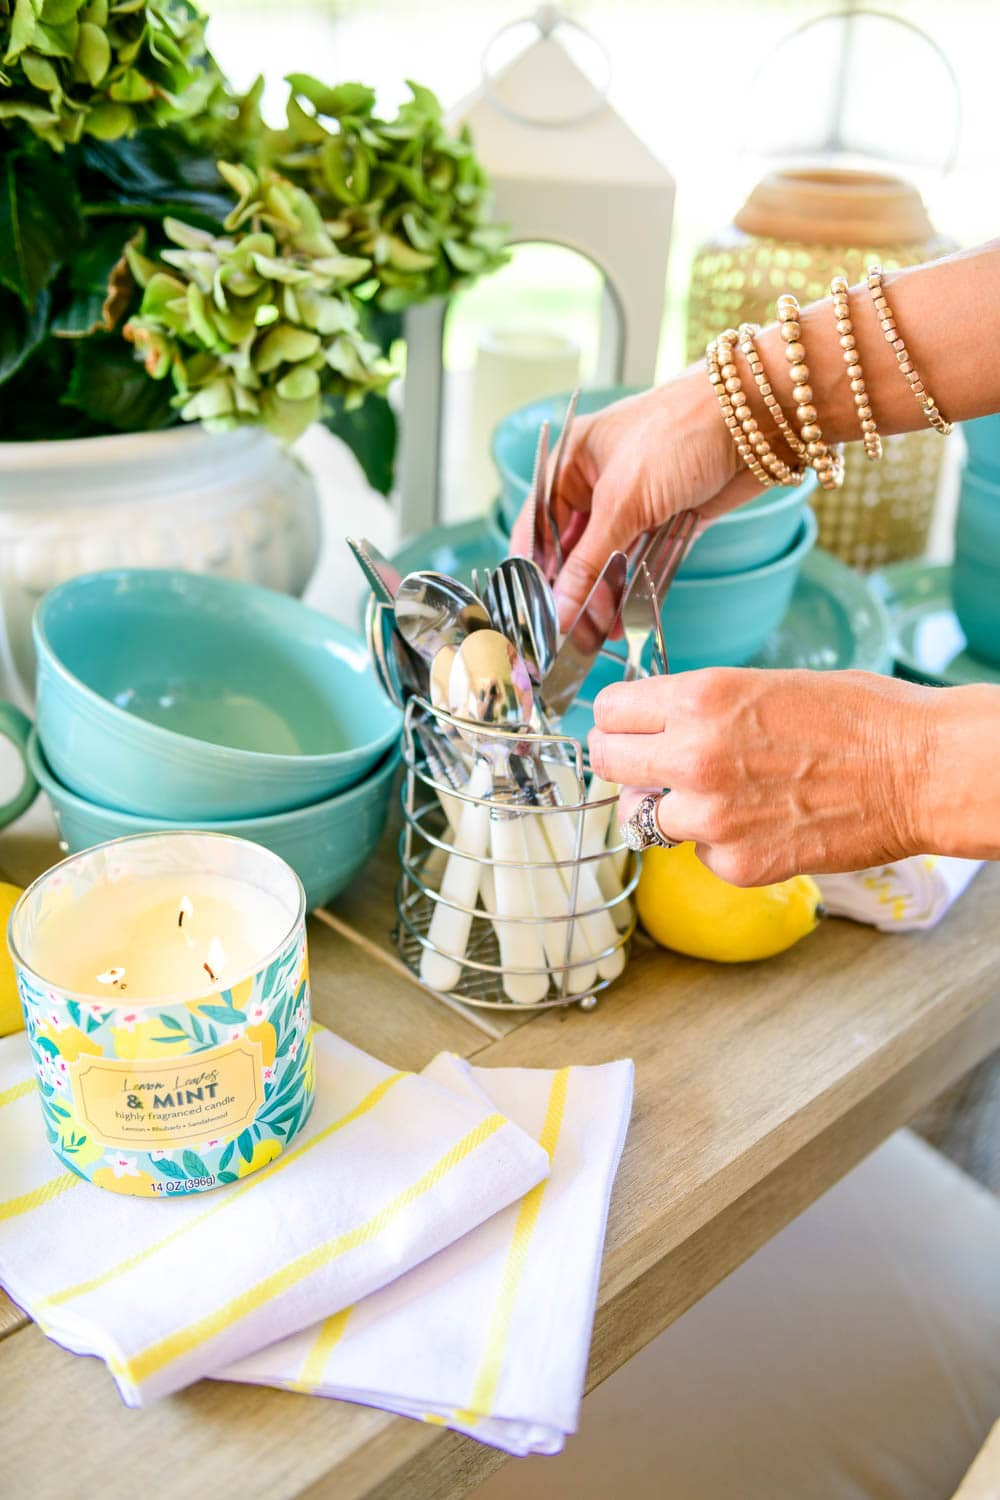 Love the turquoise color of this dish set mixed with lemon accents for summer. #ABlissfulNest #WalmartHome #ad